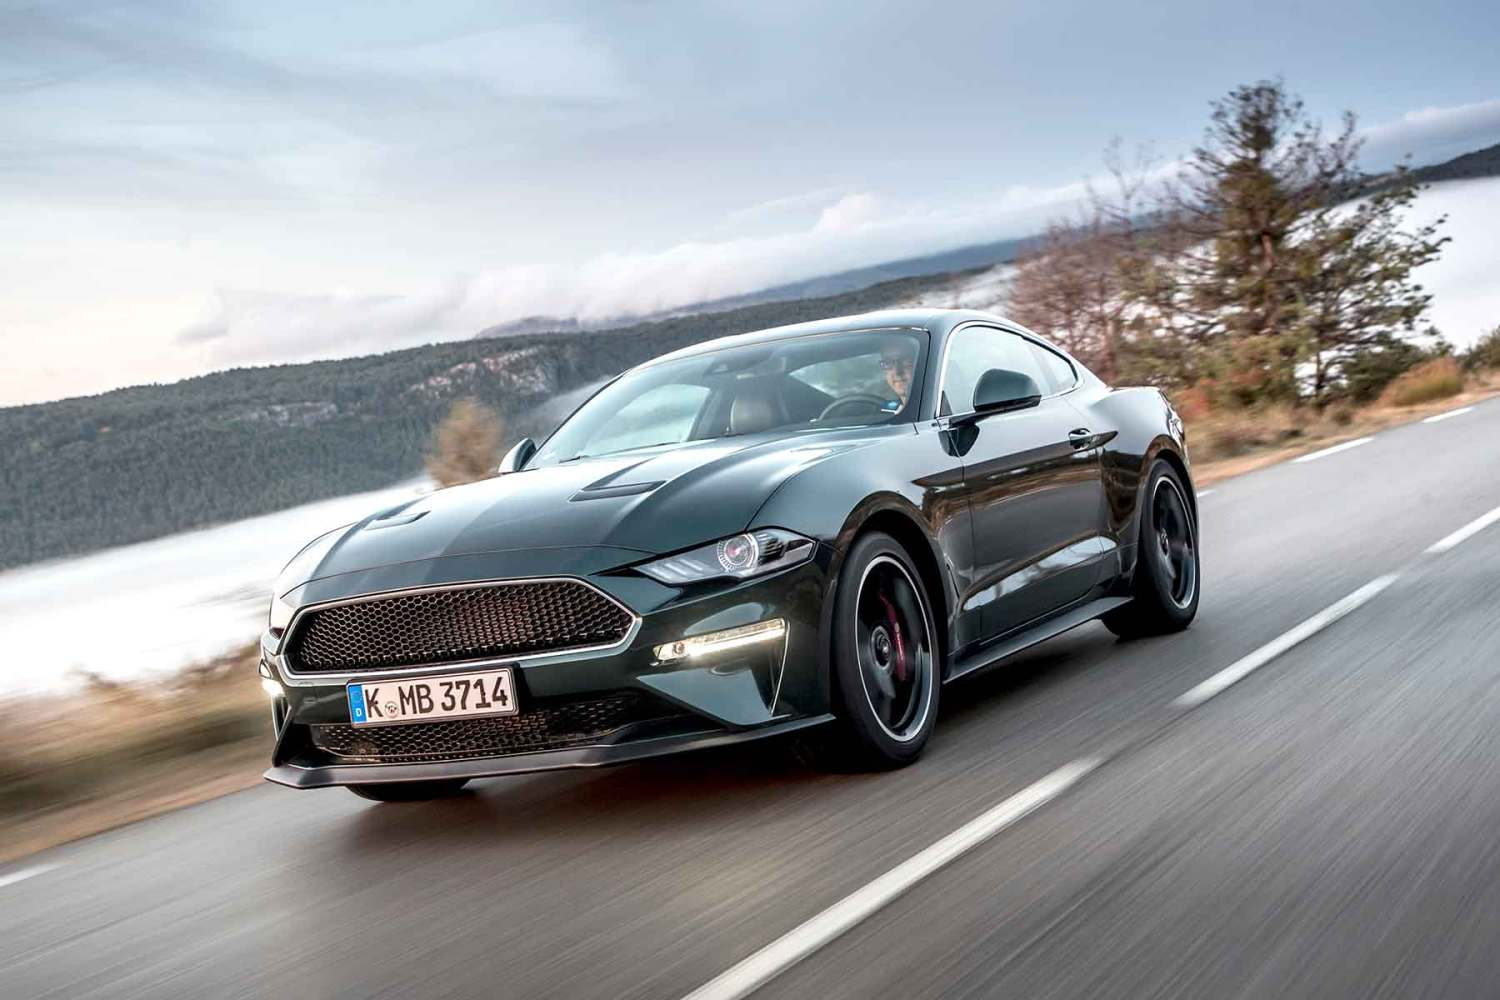 Ford mustang bullitt 2018 review v8 muscle hollywood cool